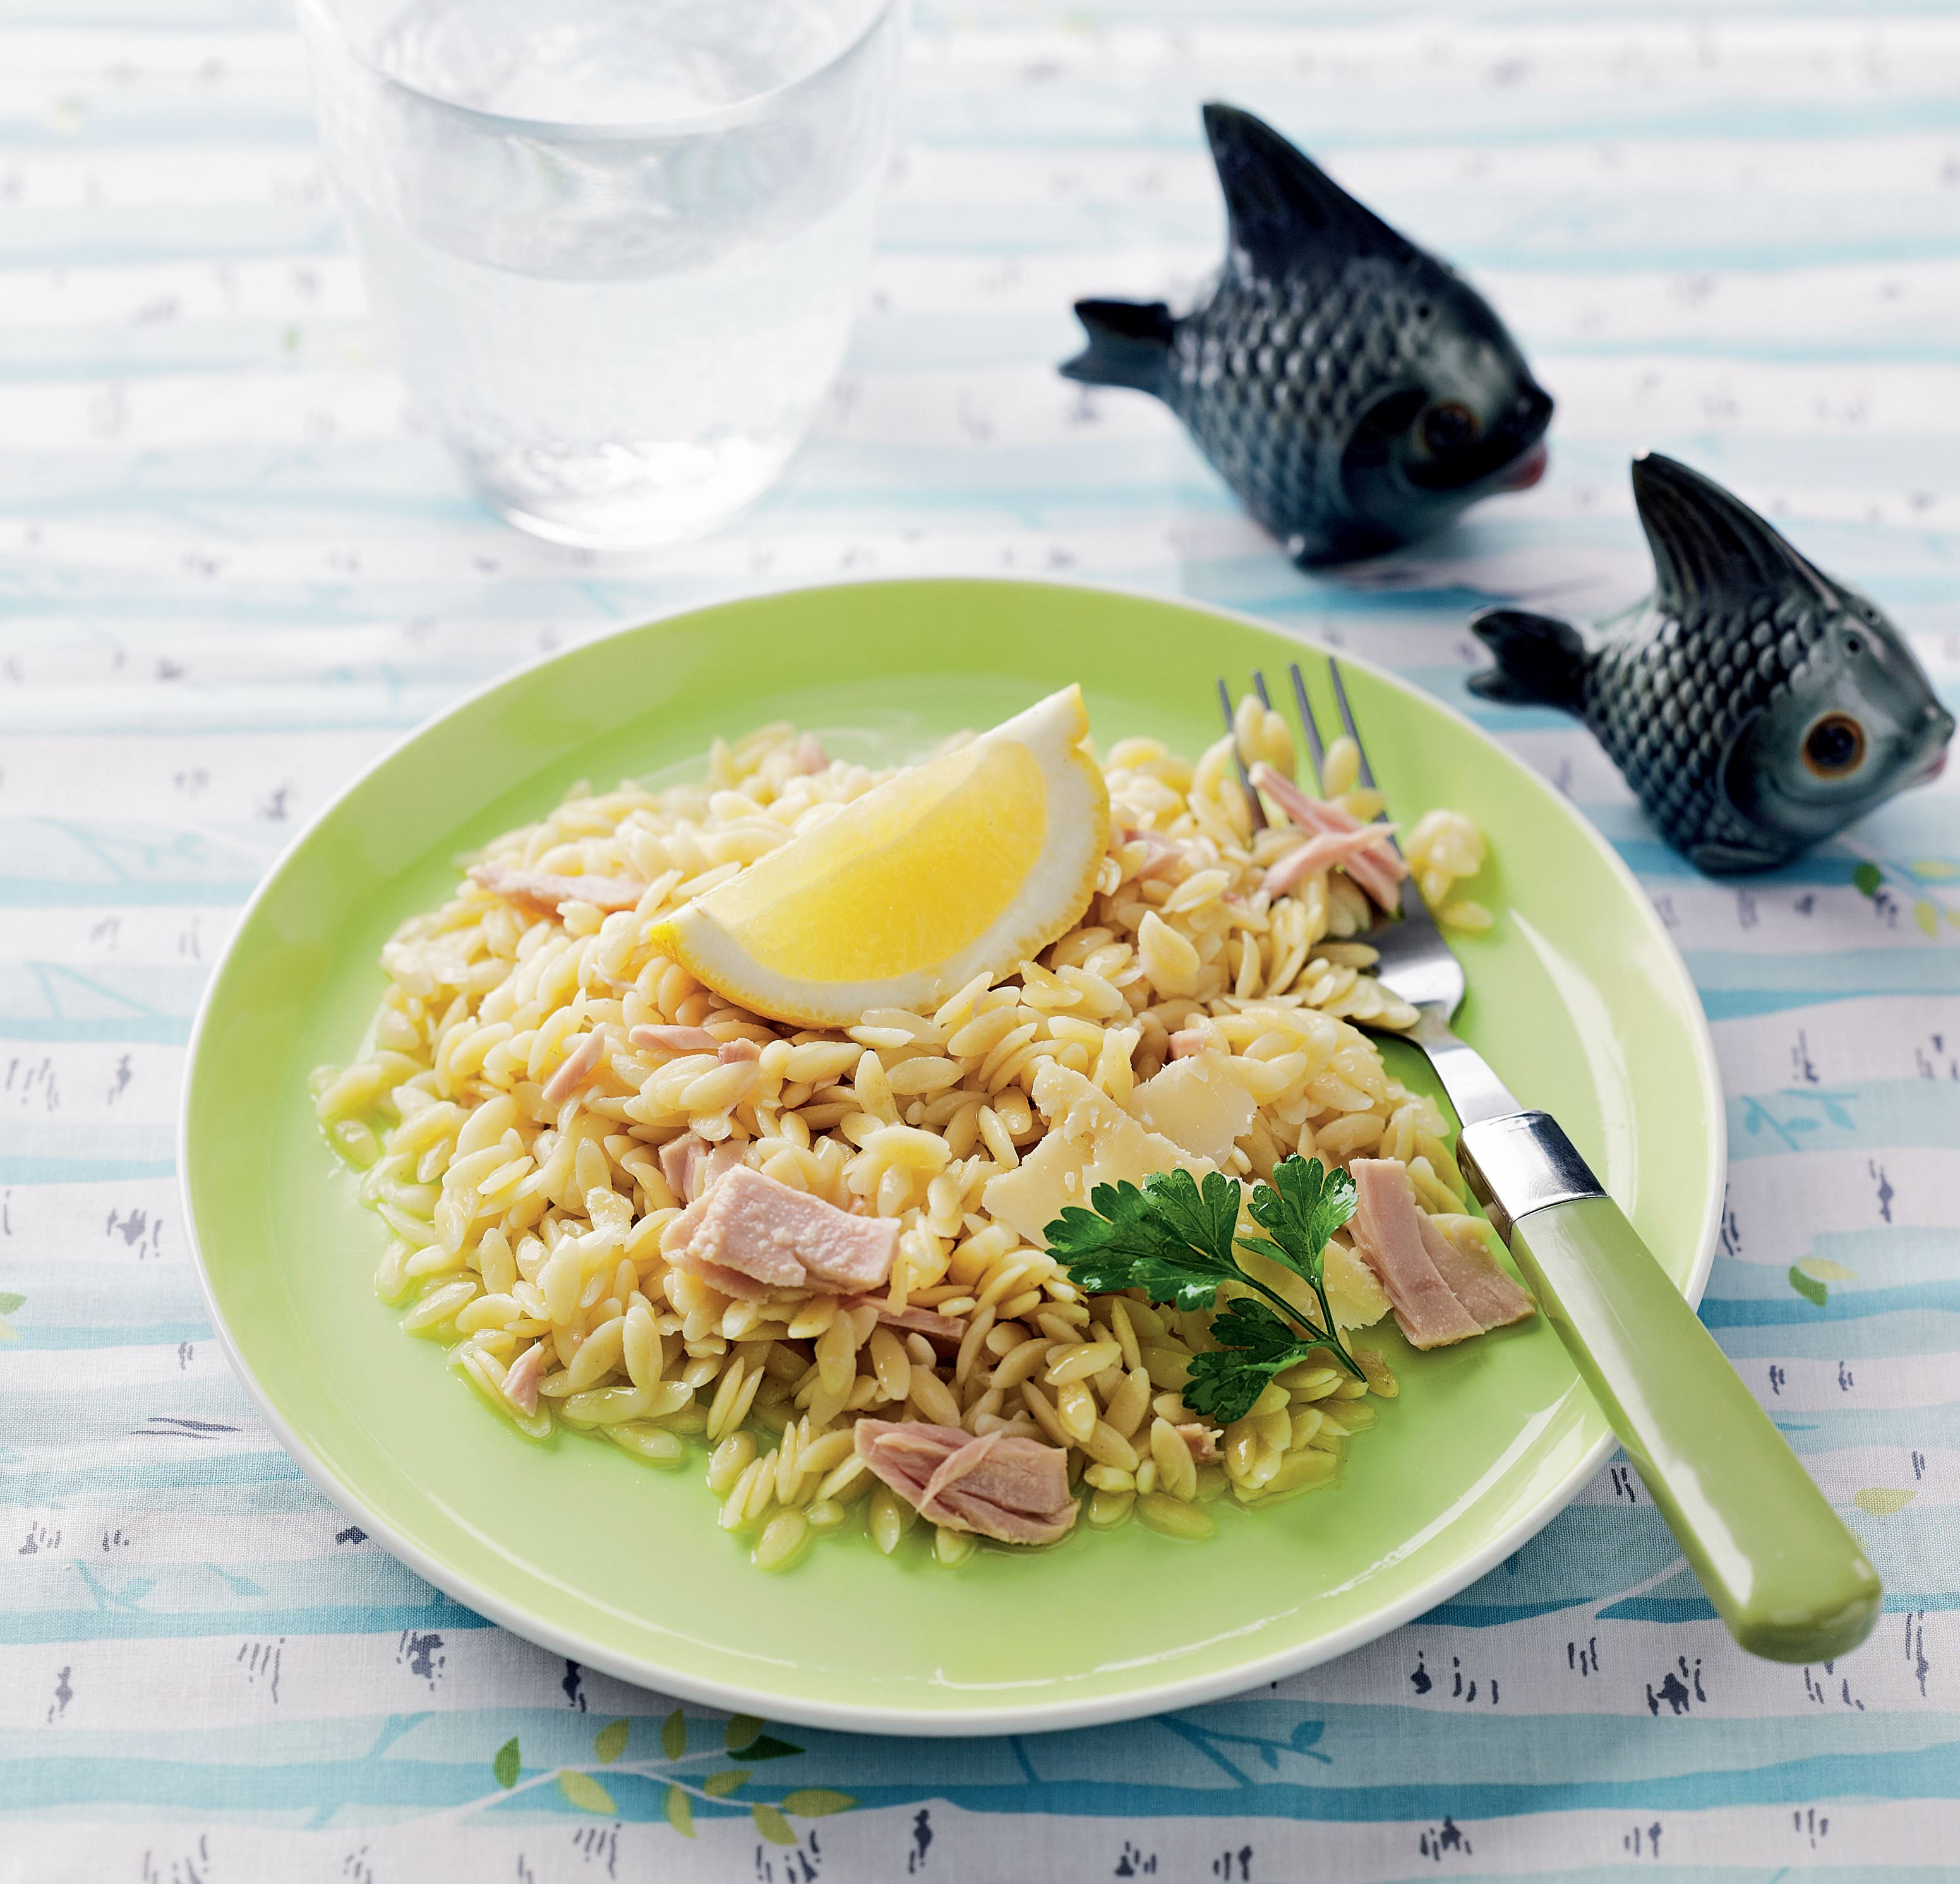 Lemon and tuna orzo